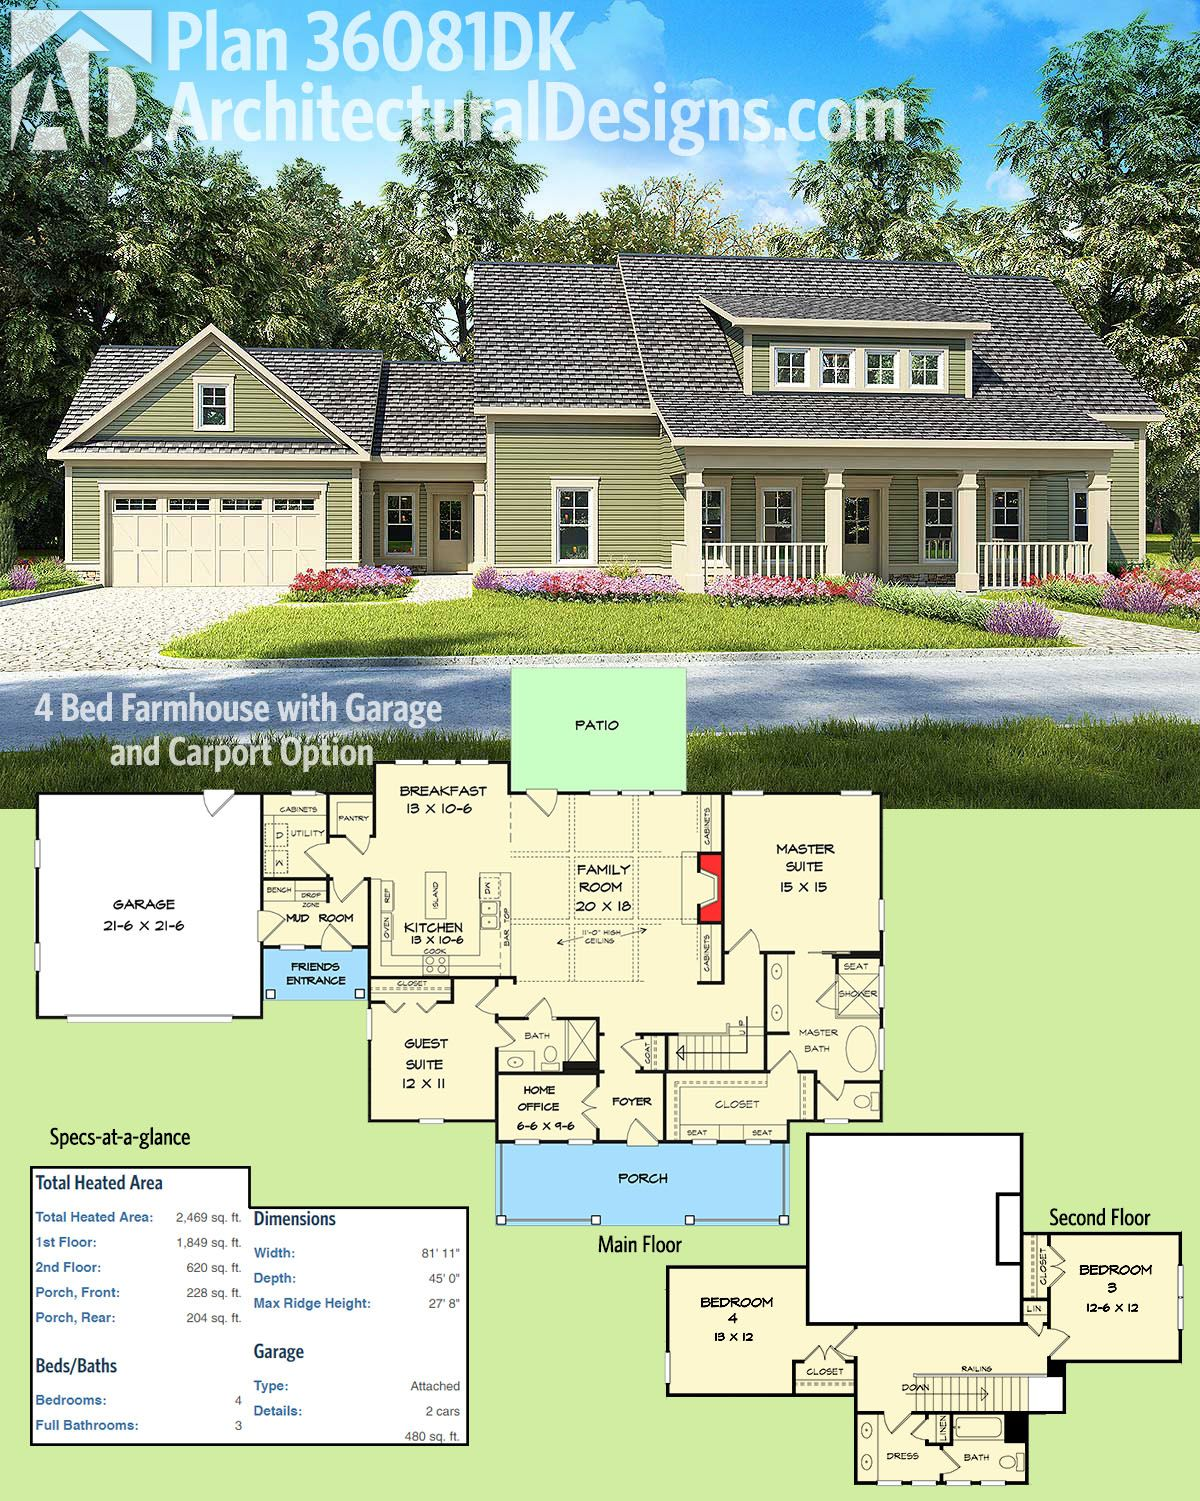 Closing in a carport to make guest suite - Architectural Designs House Plan 36081dk Gives You 4 Beds And Has A Version With A Carport